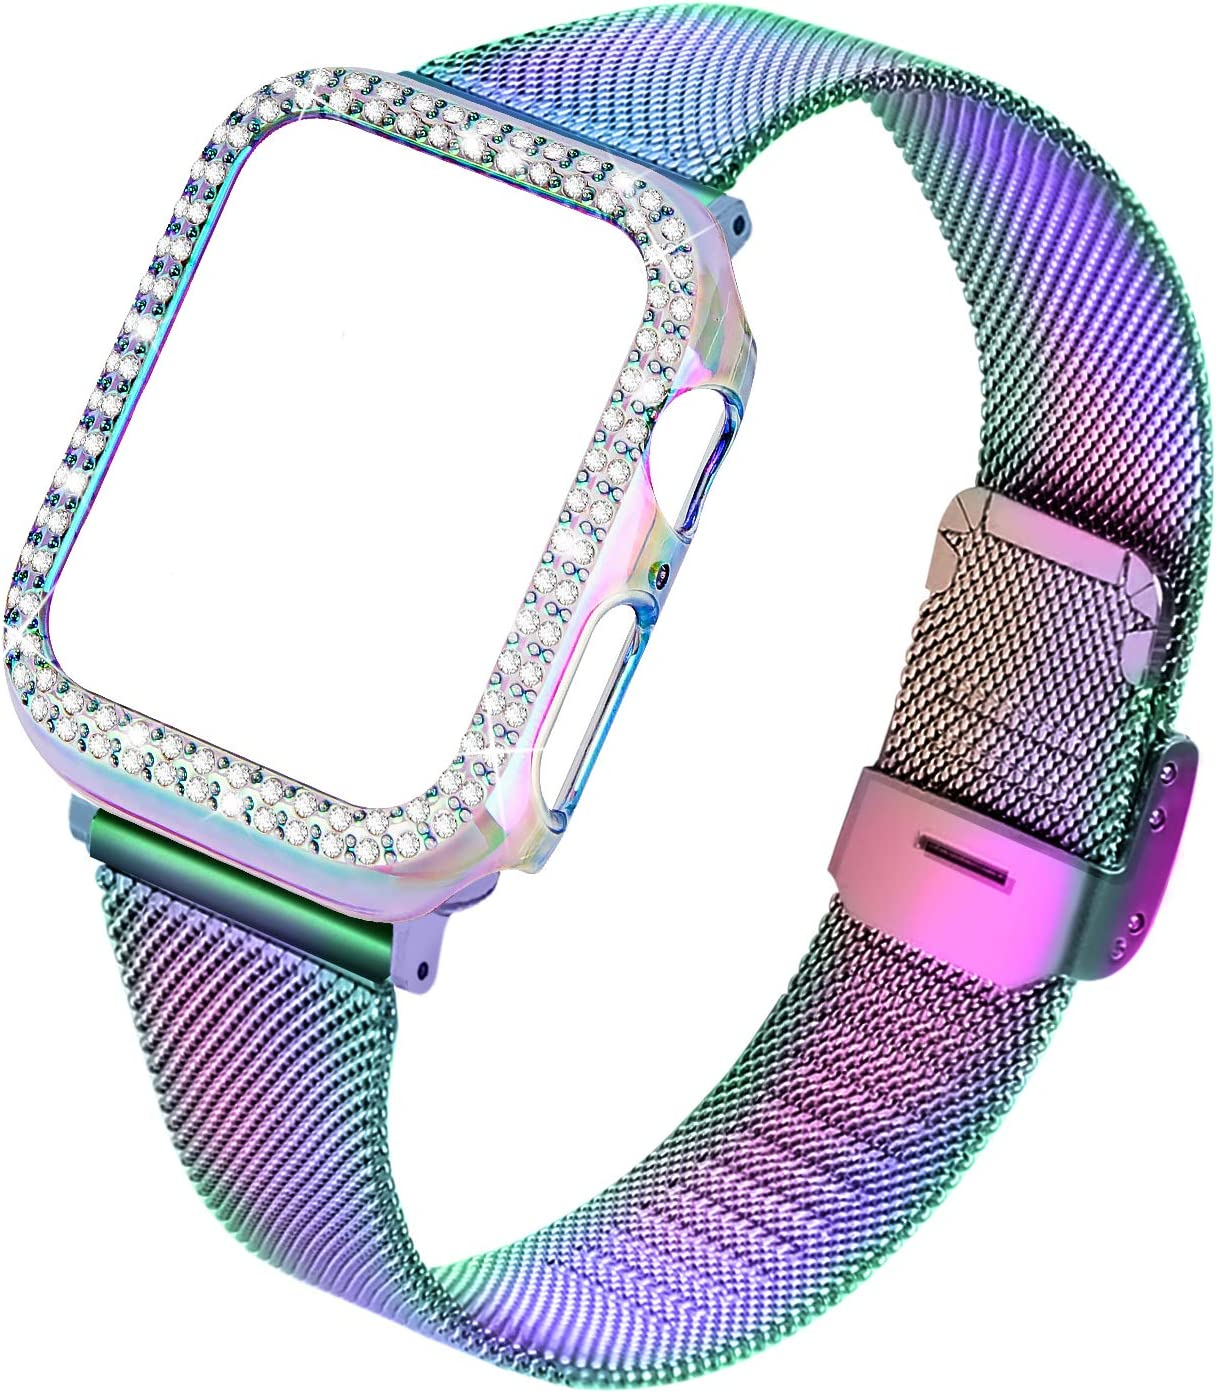 Joyozy Stainless Steel Mesh bands Compatible For Apple Watch 40mm,Women Bling Protective Crystal Diamond Case with Loop Mesh Strap For Iwatch Series 6/SE/5/4(No Tool Needed) (Colorful+Case, 40MM)